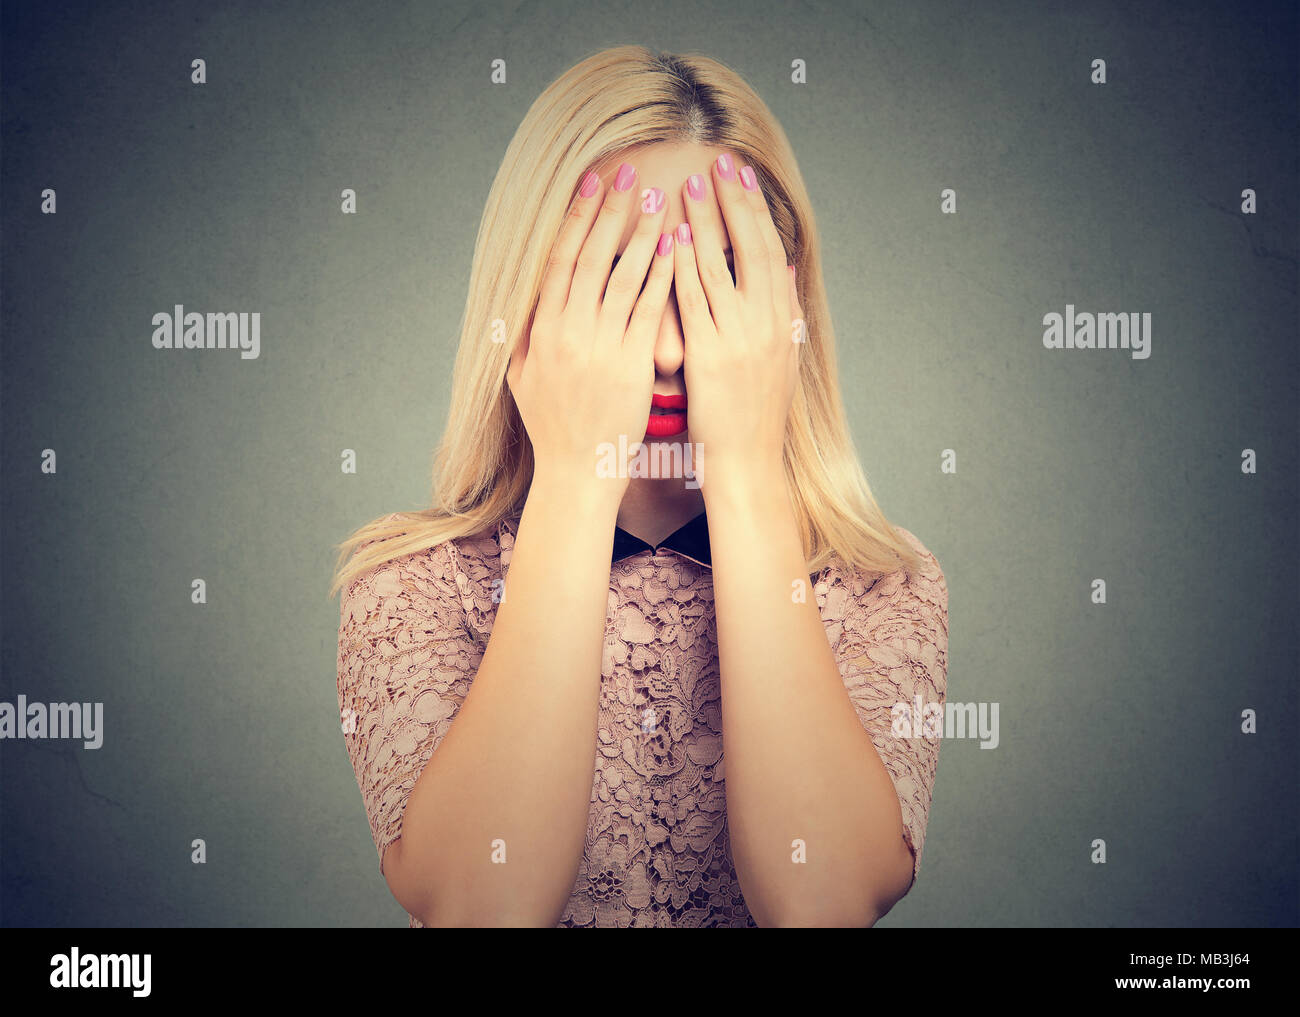 Anonymous blond girl hiding eyes while covering them with hands standing on gray background. - Stock Image